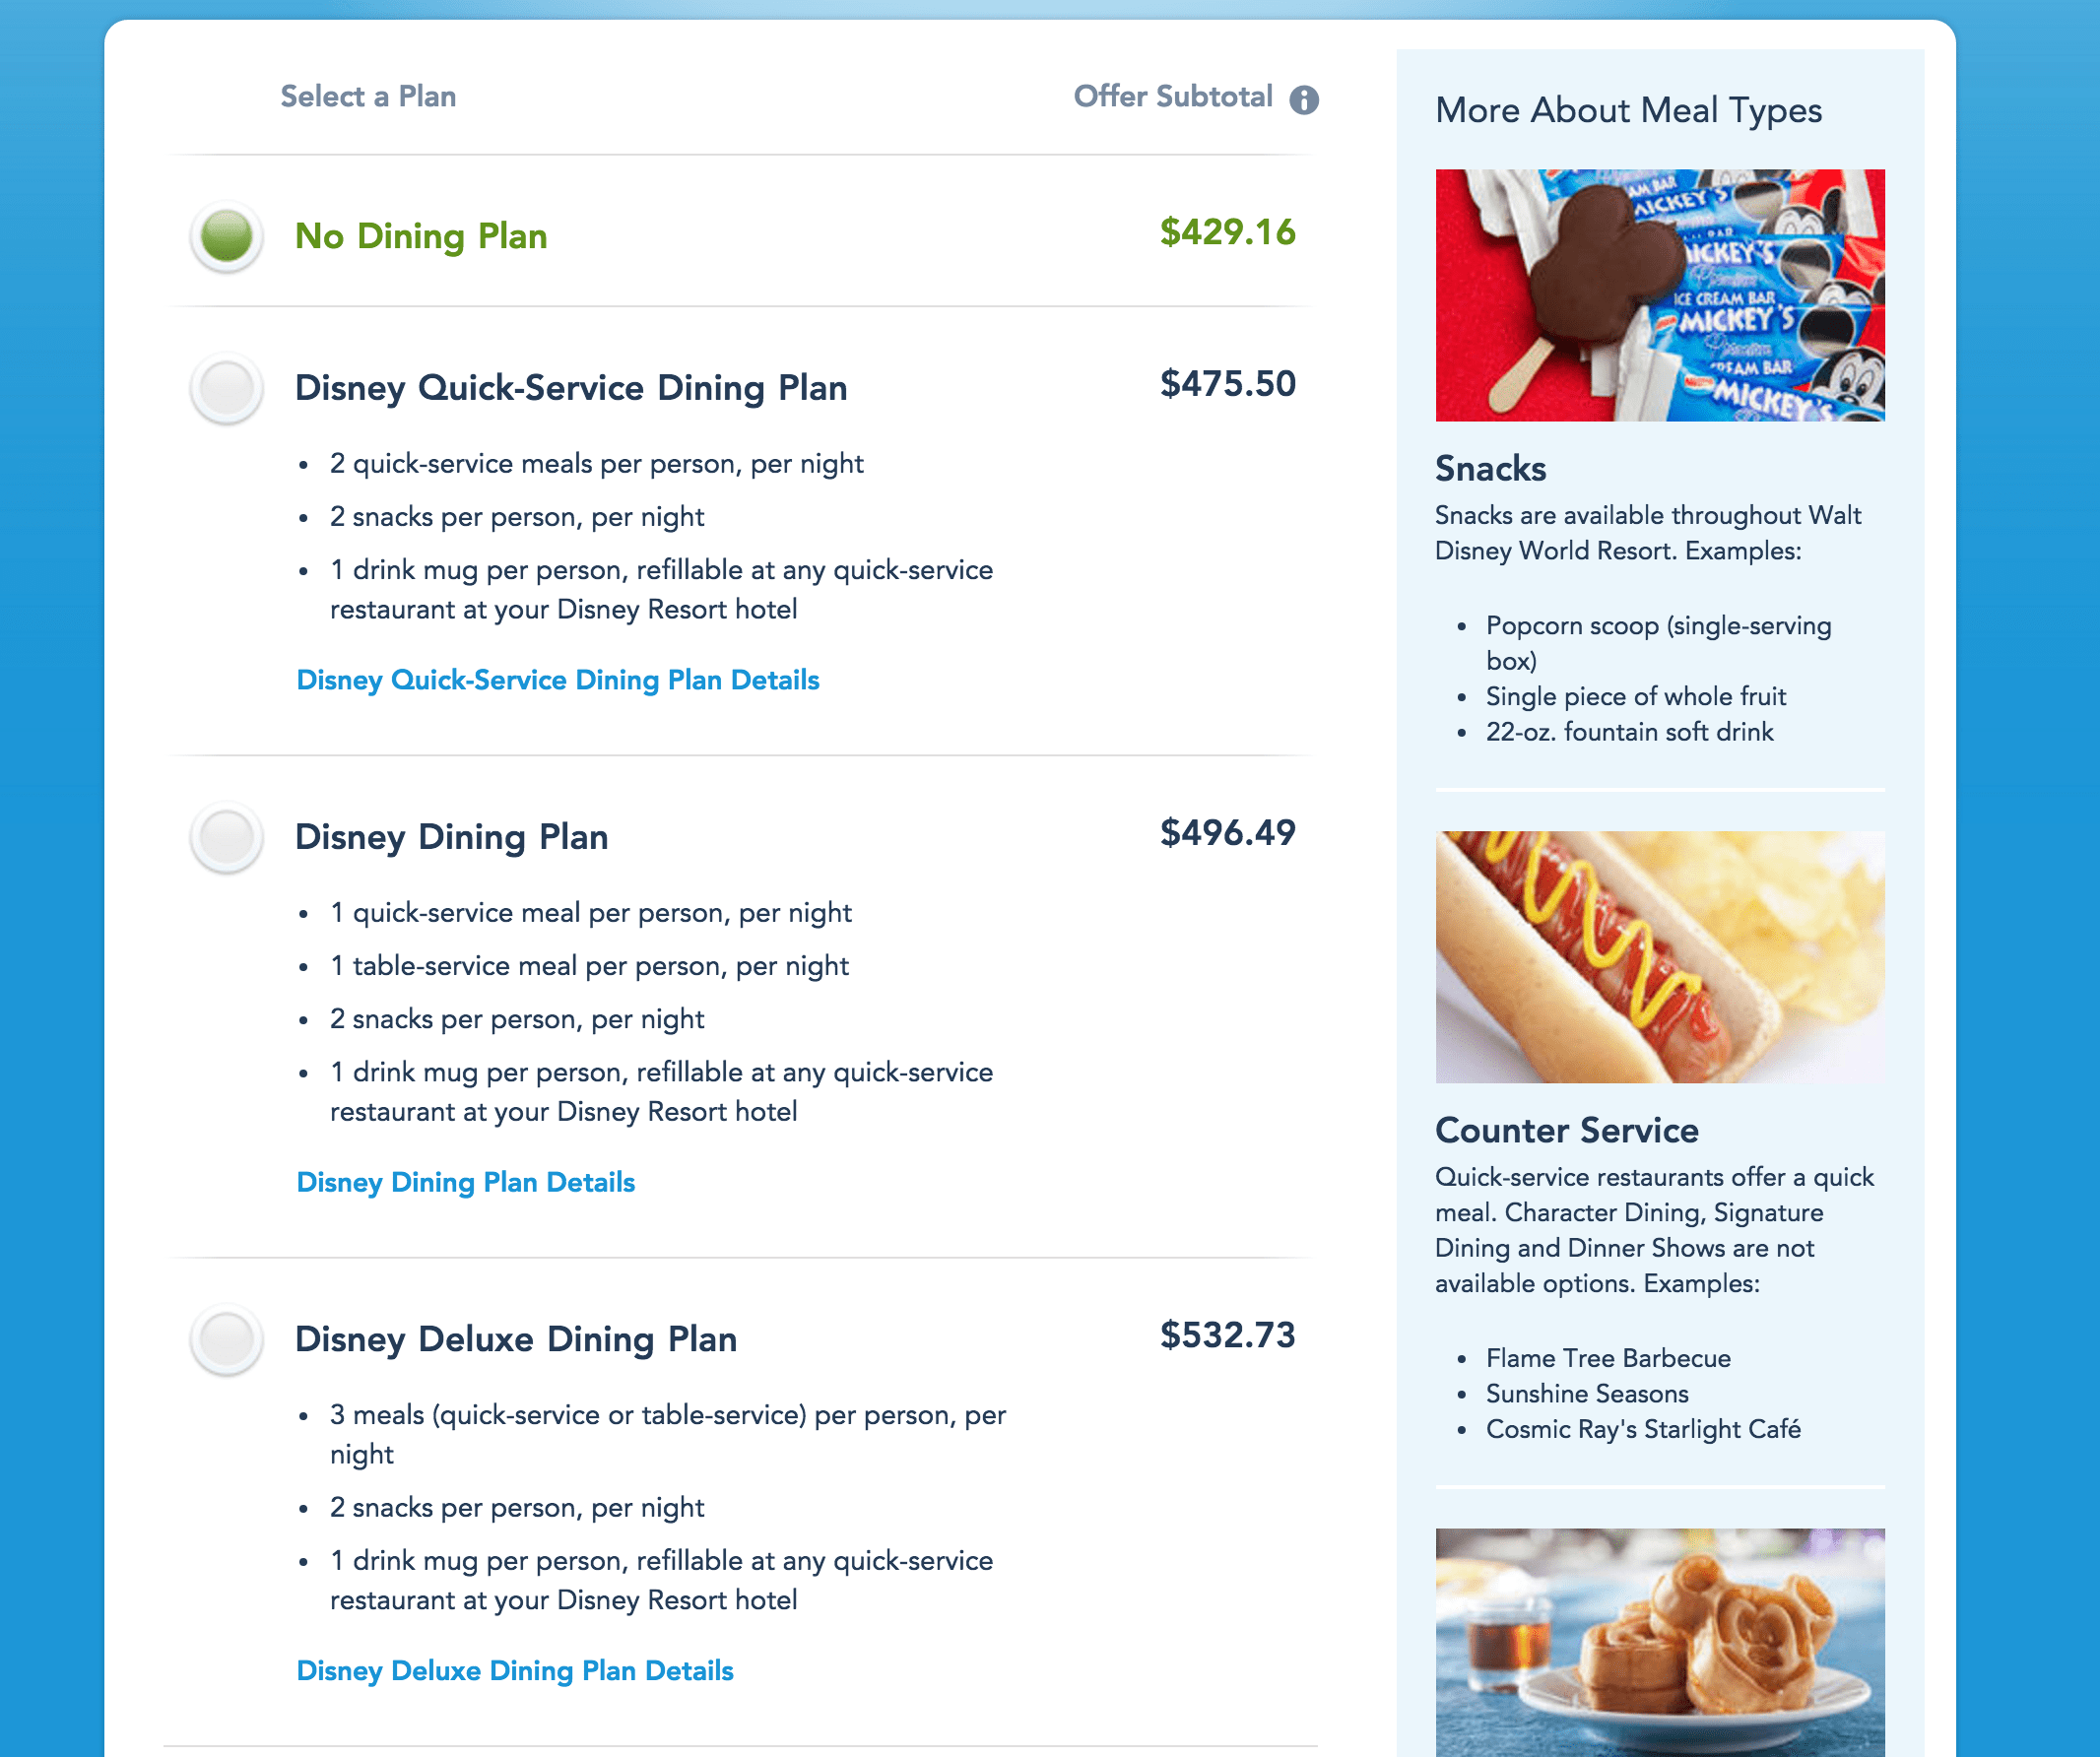 How to Purchase a Disney Dining Plan